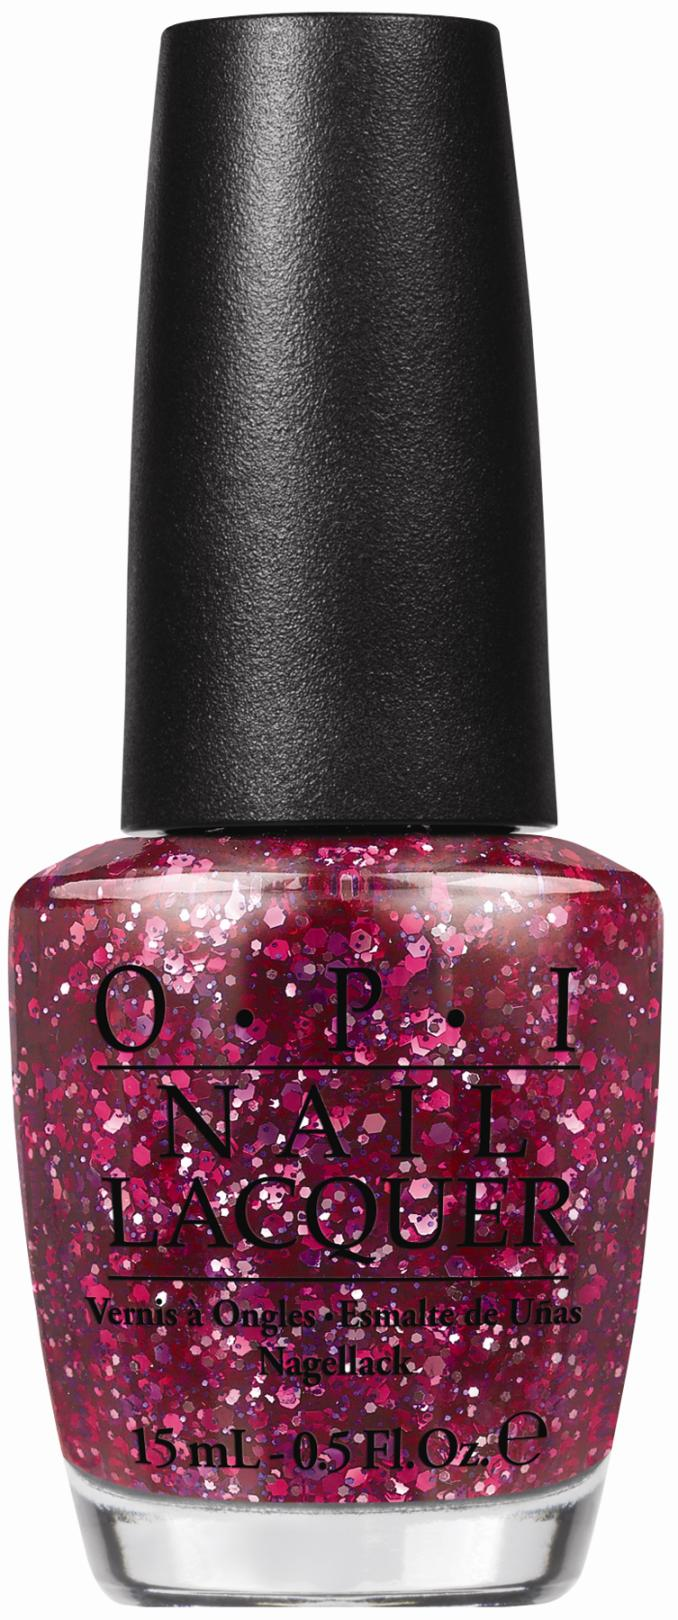 Opi Announces A New Line Of Sparkling Shades With